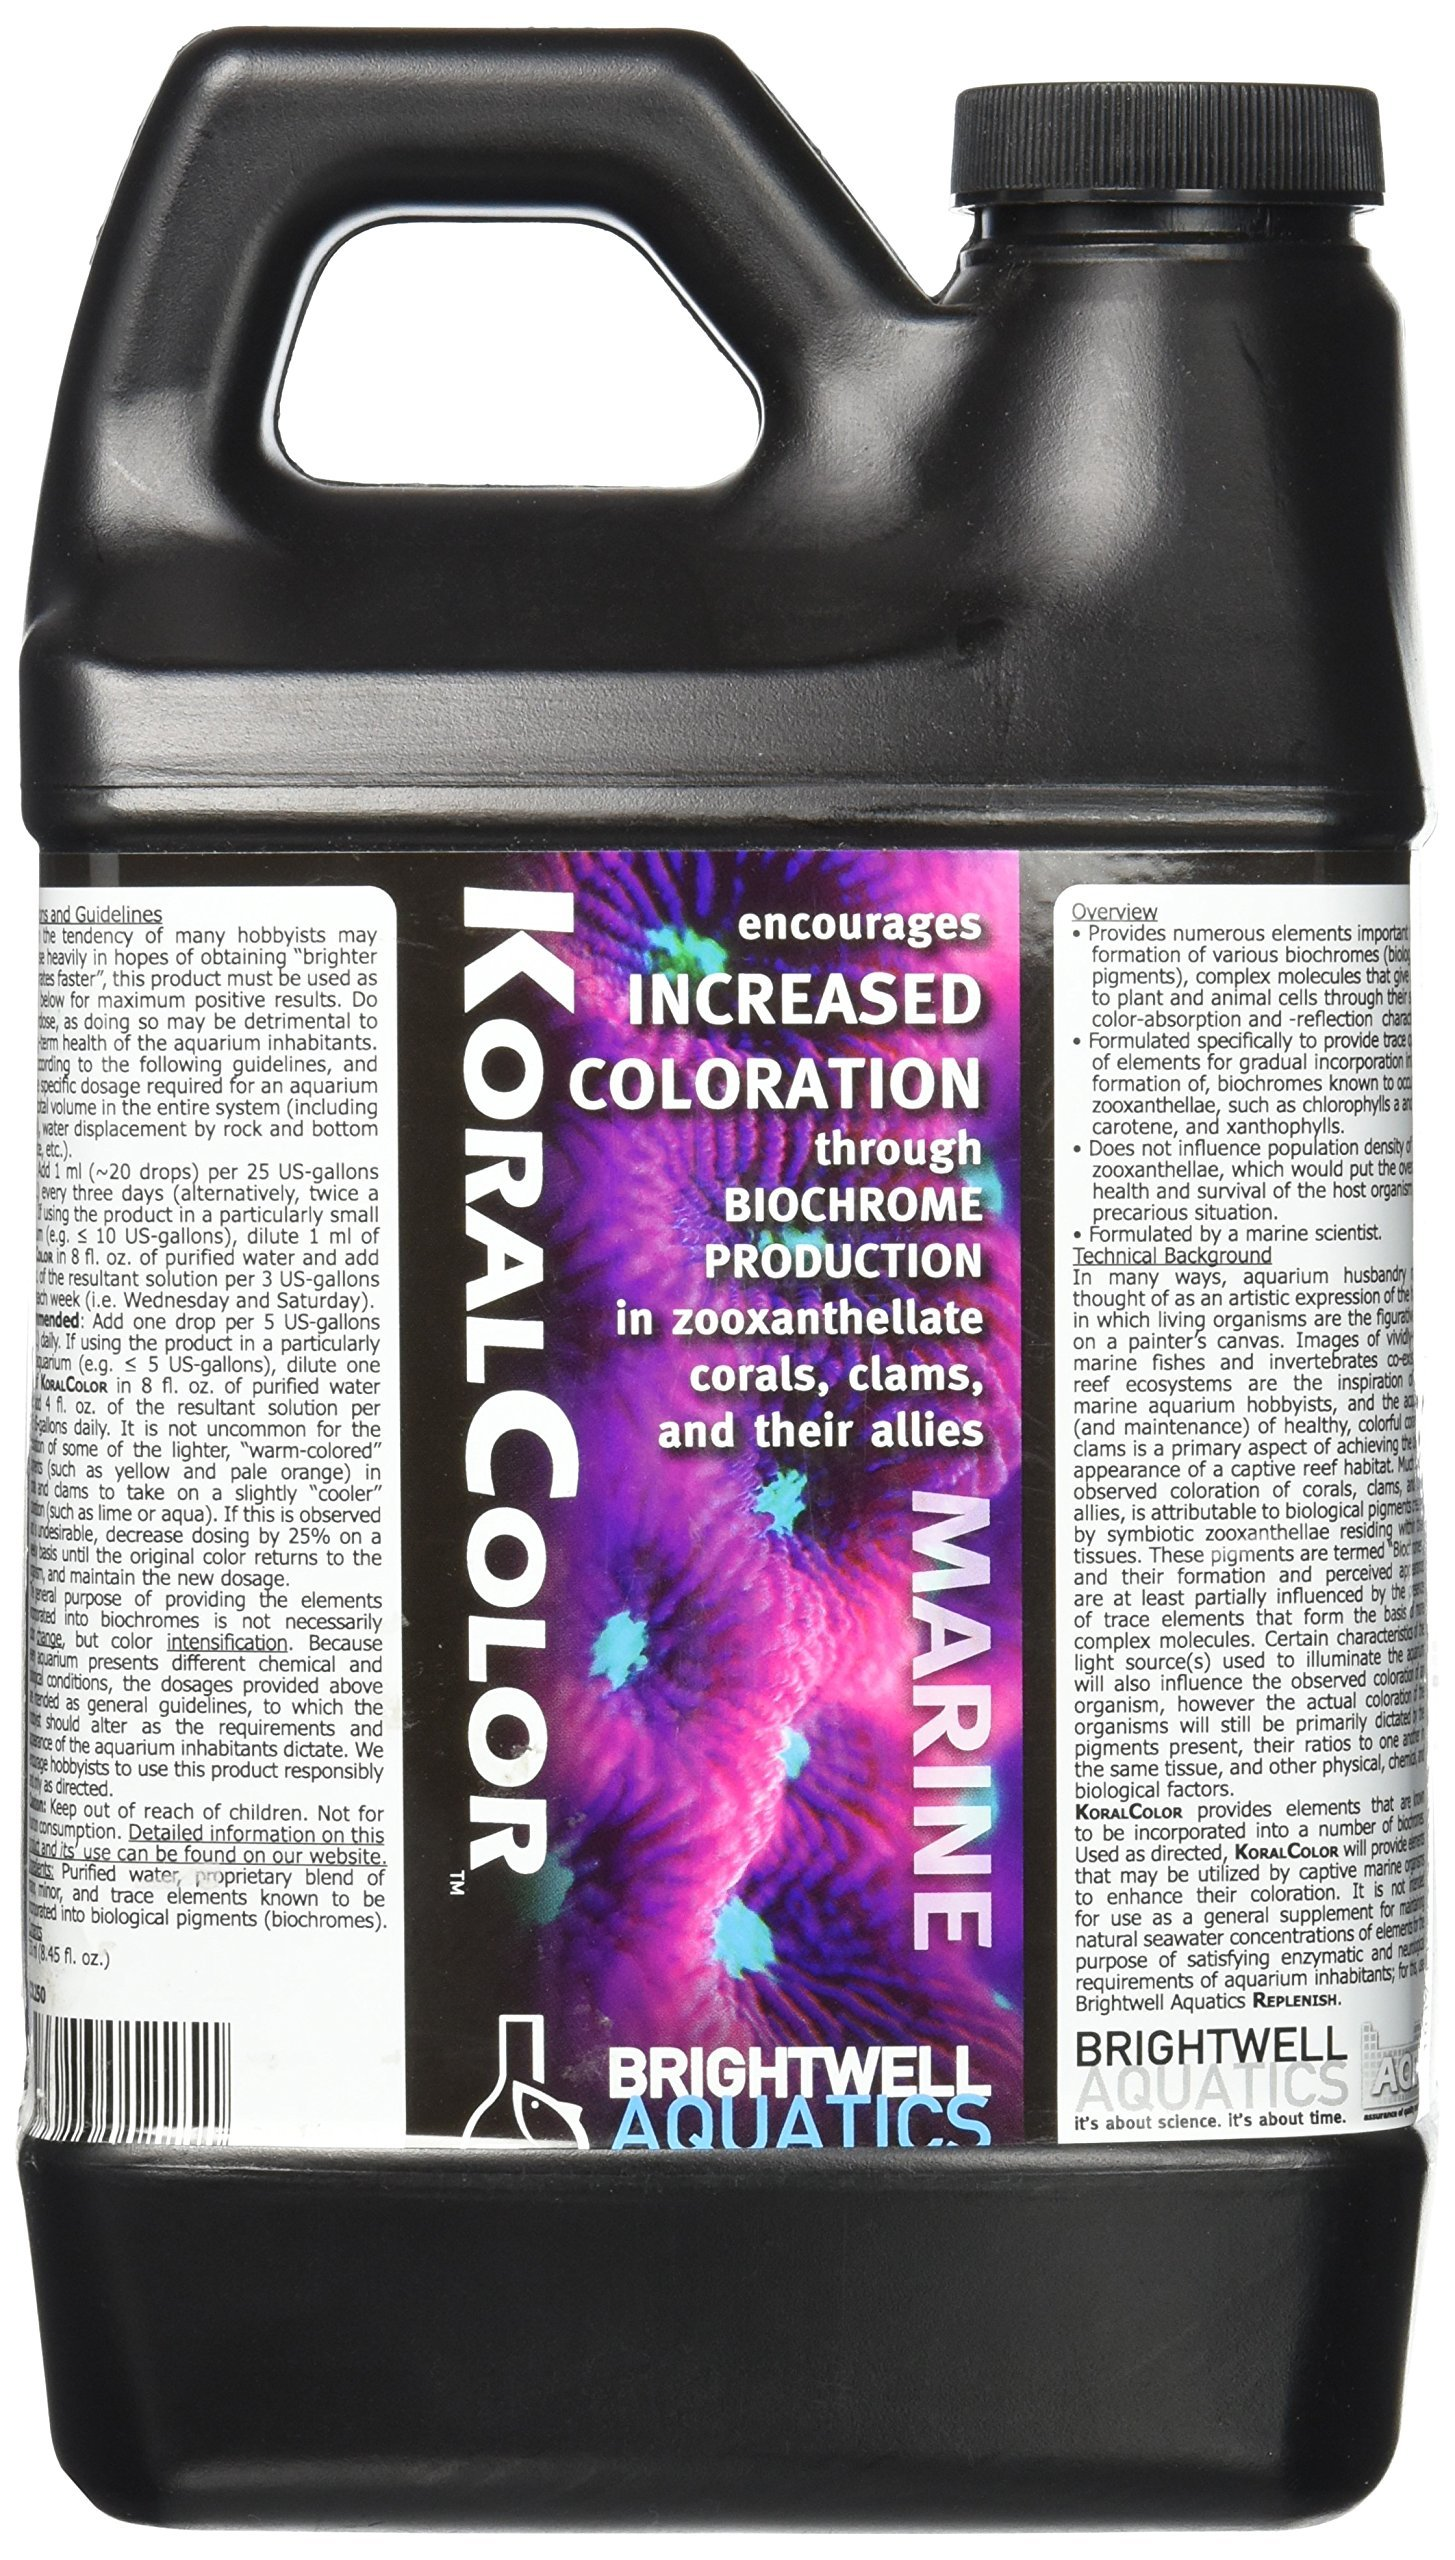 Brightwell Aquatics KoralColor, Encourages Increased Coloration Through biochrome Production in Corals, Clams, Their Allies, 2 Liter